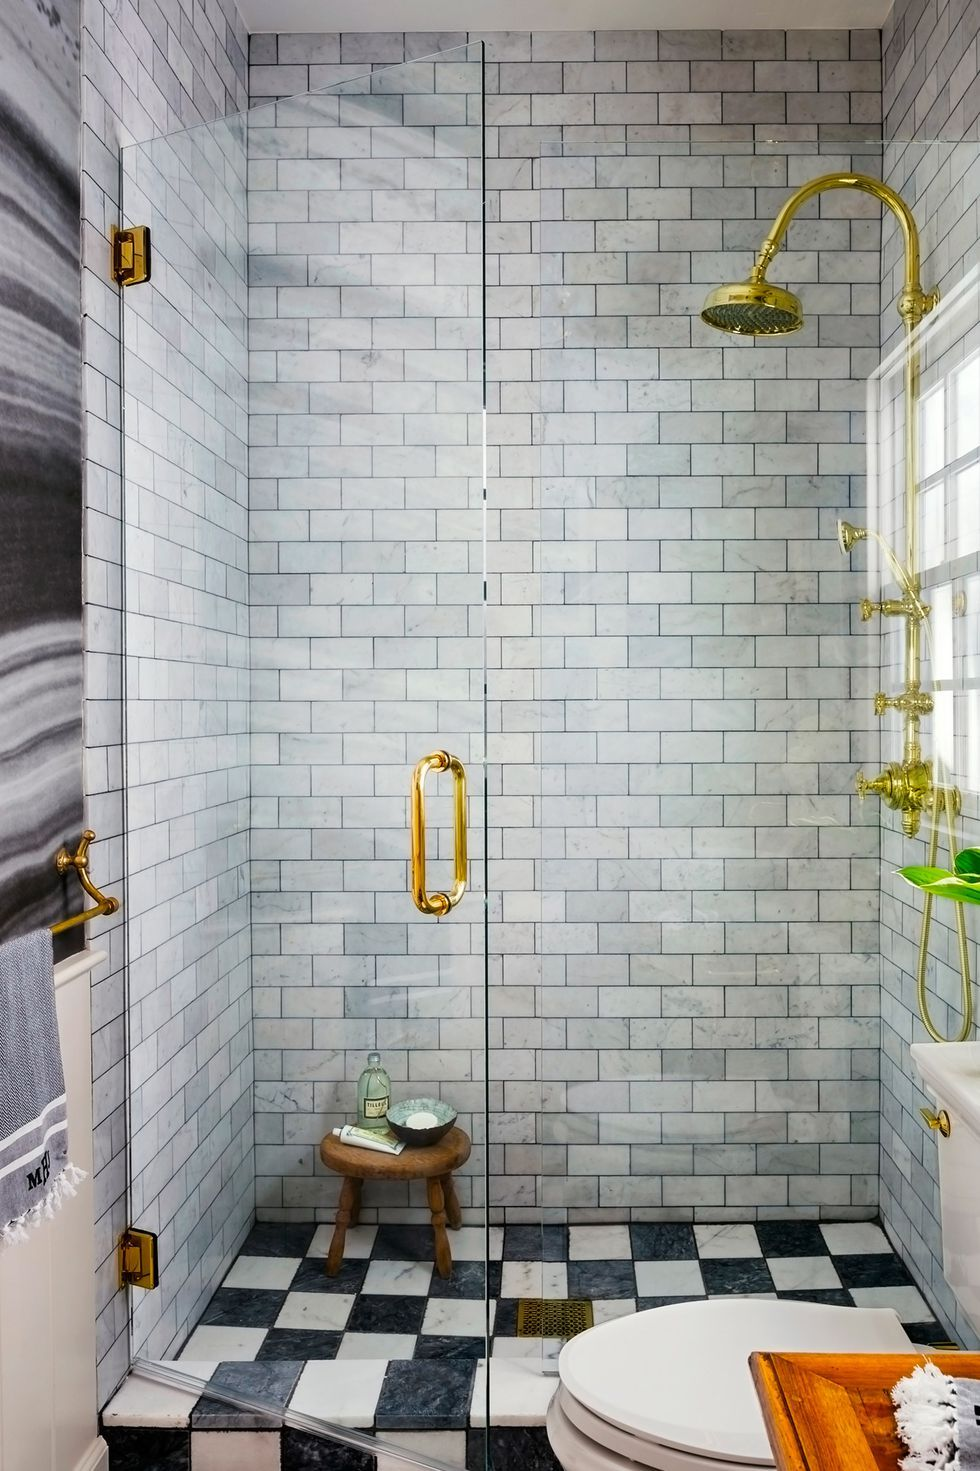 29 Unique Bathroom Tile Ideas That You Can Make At Home